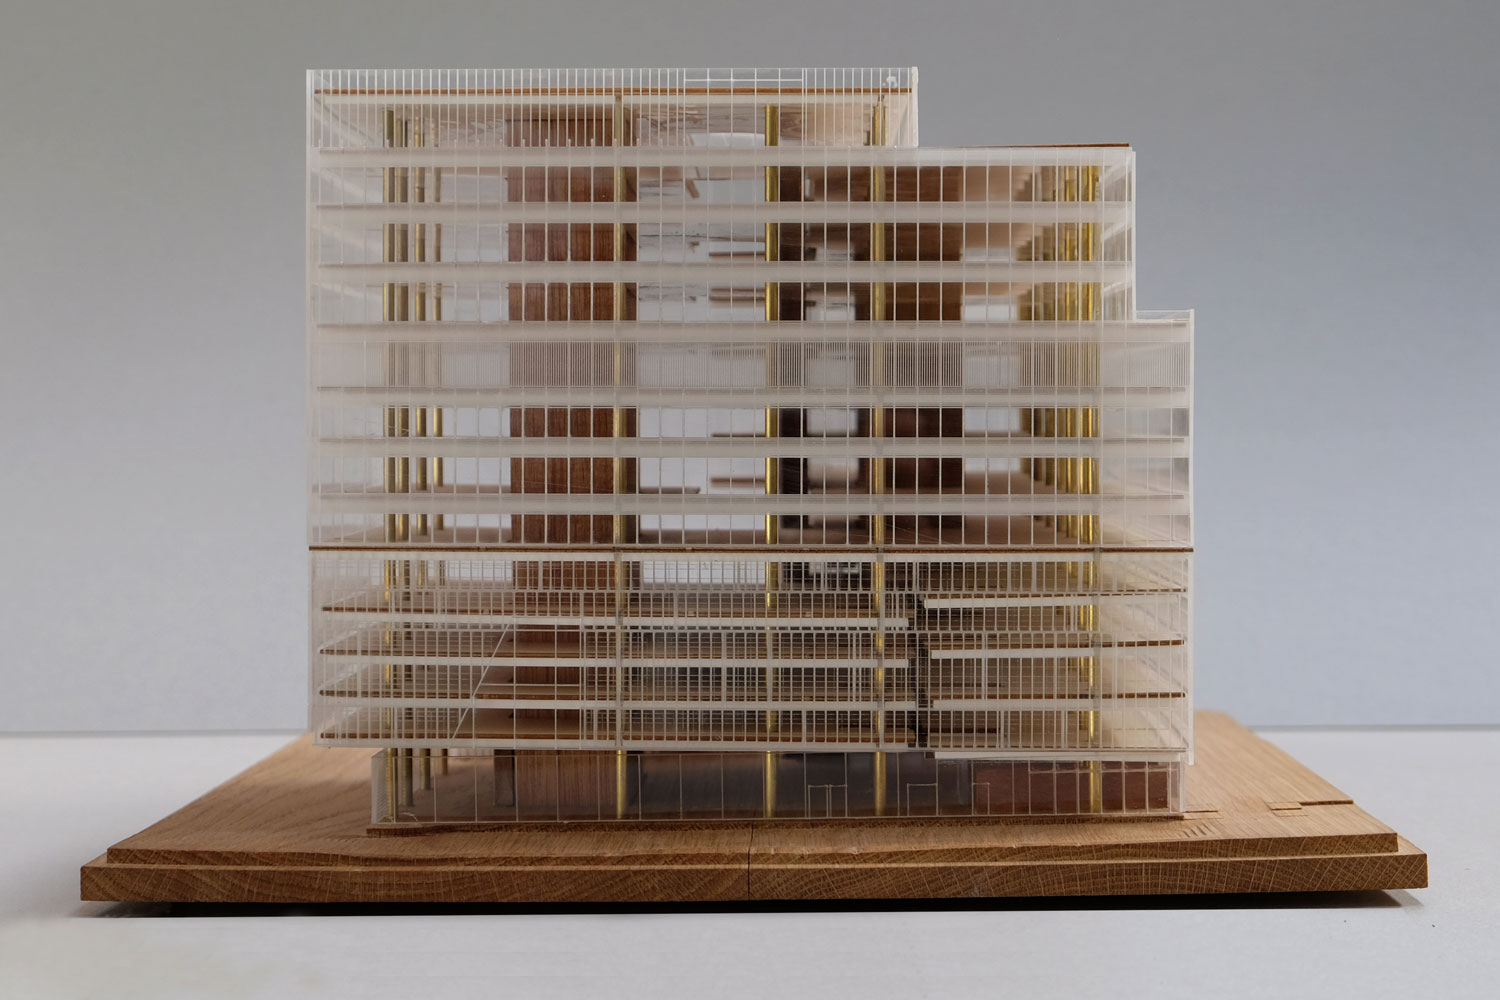 interview architectural model making studio make